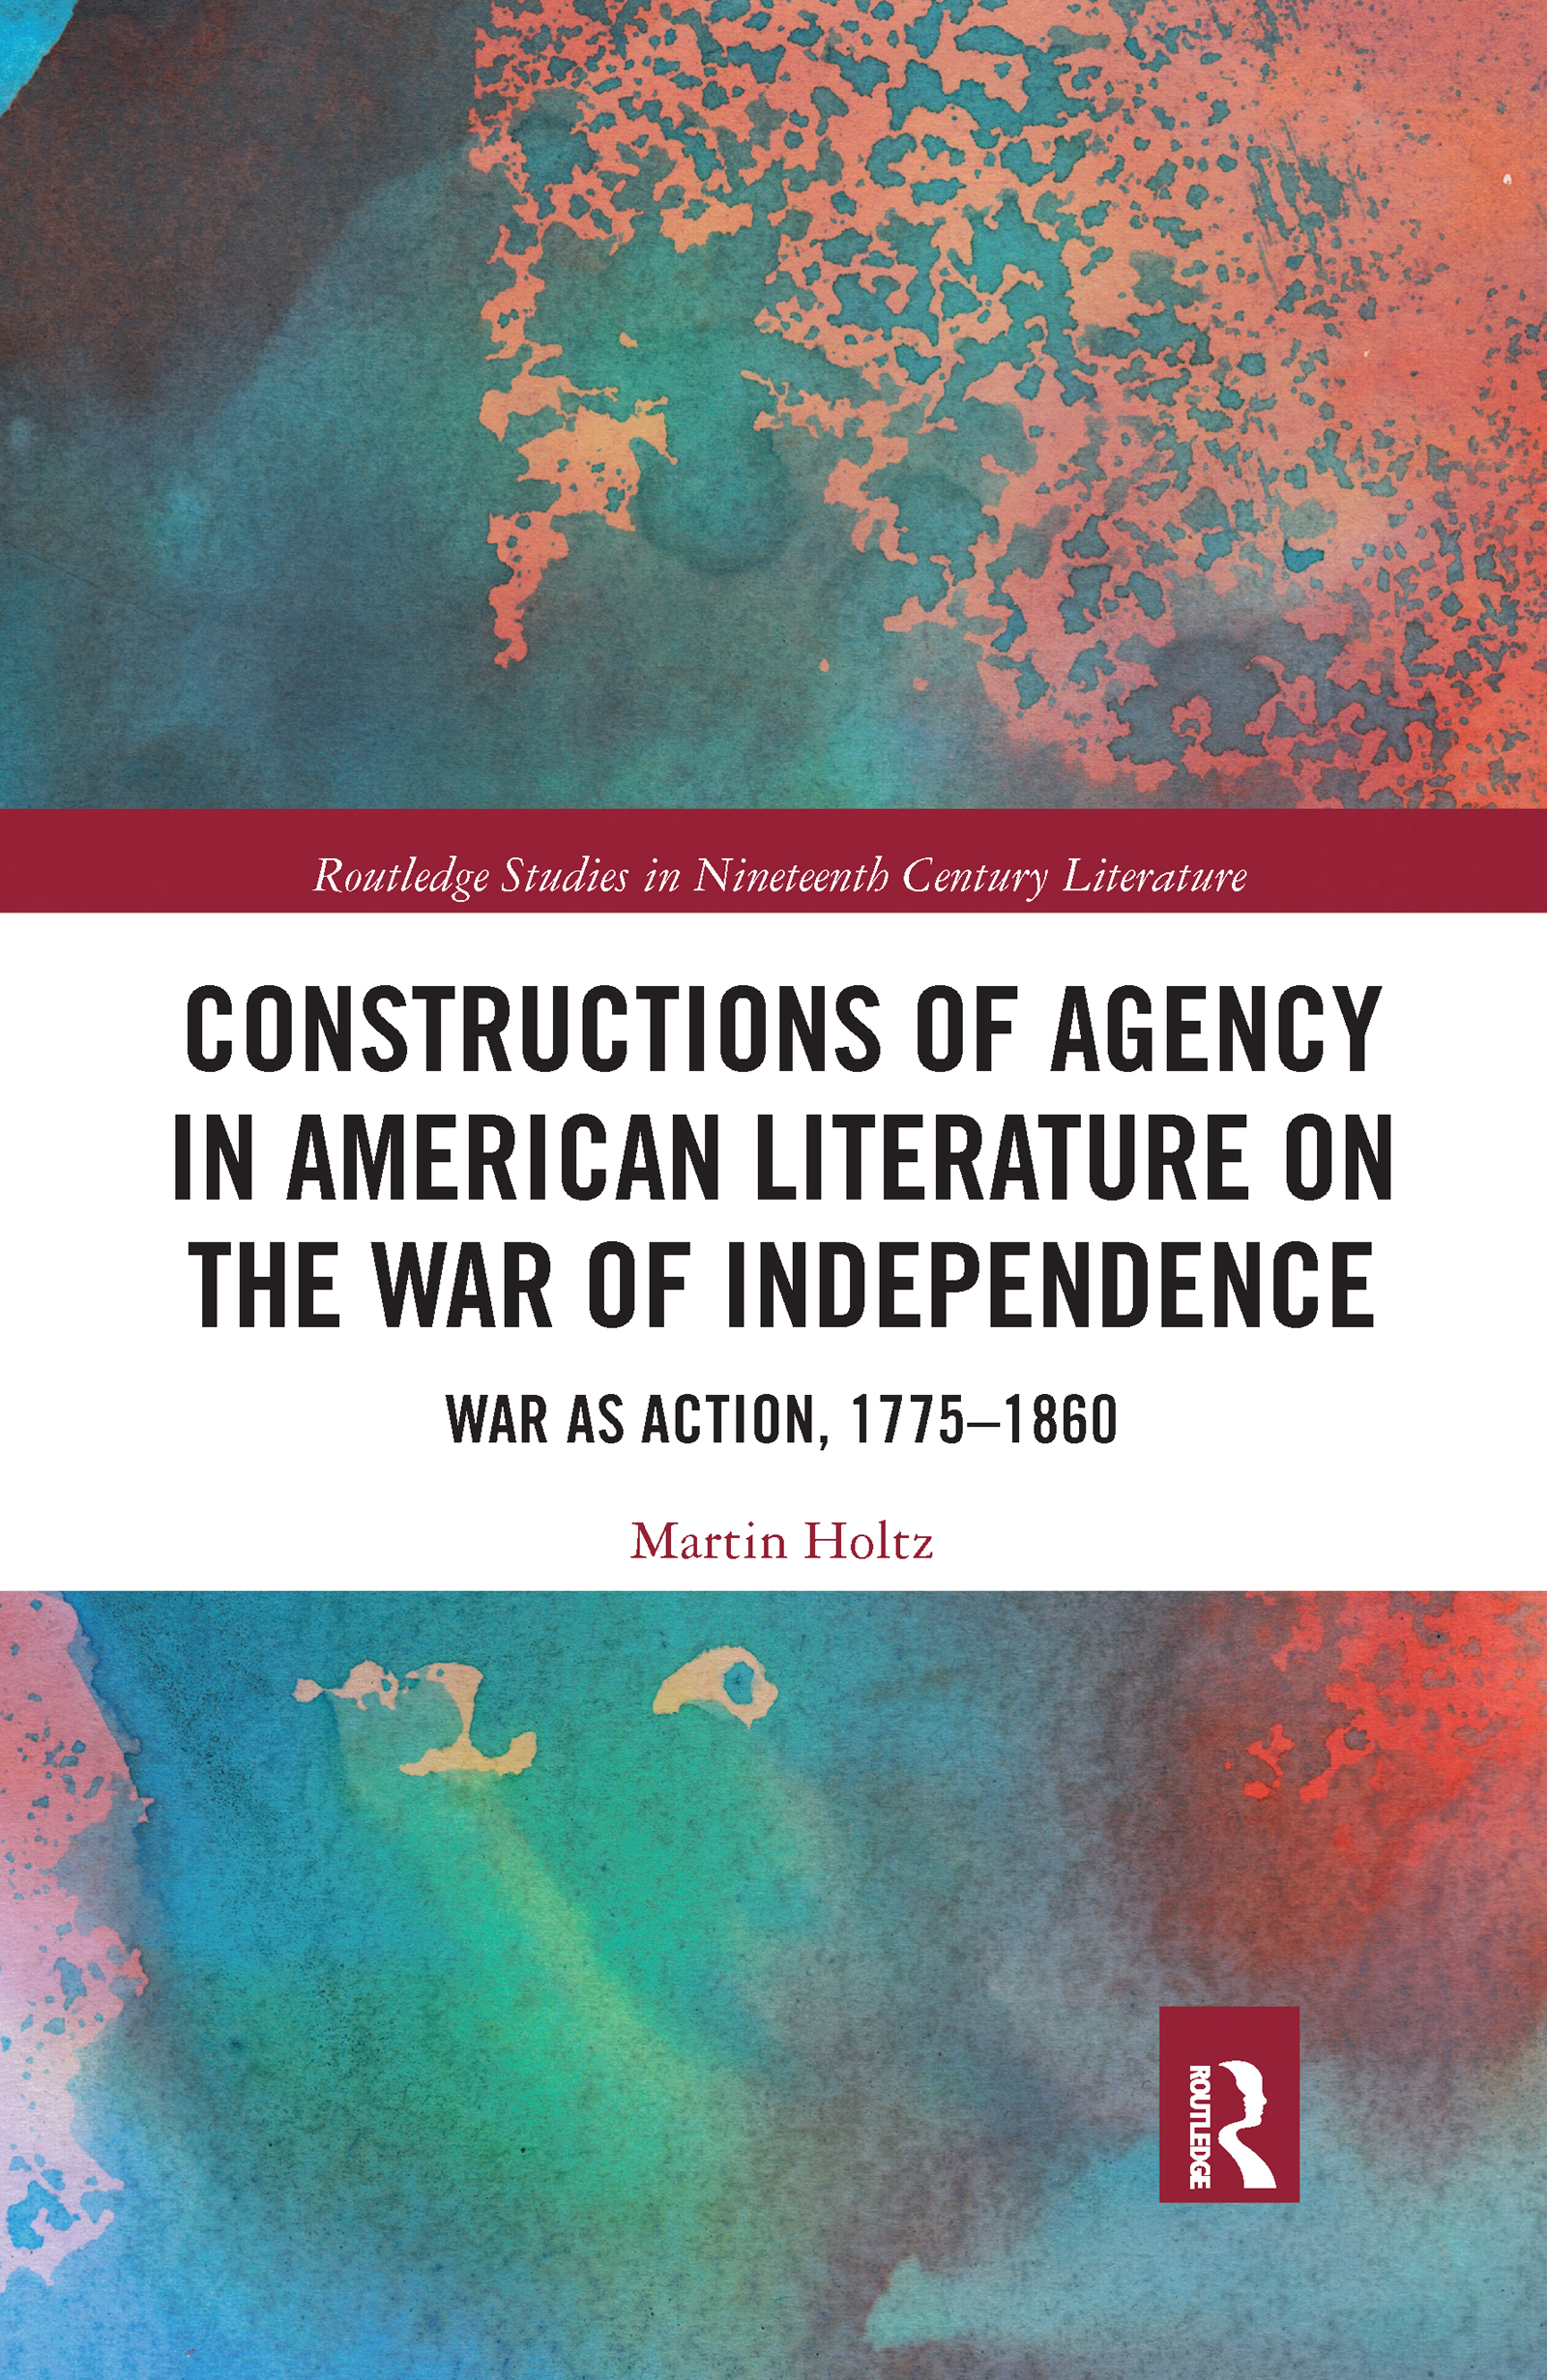 Constructions of Agency in American Literature on the War of Independence